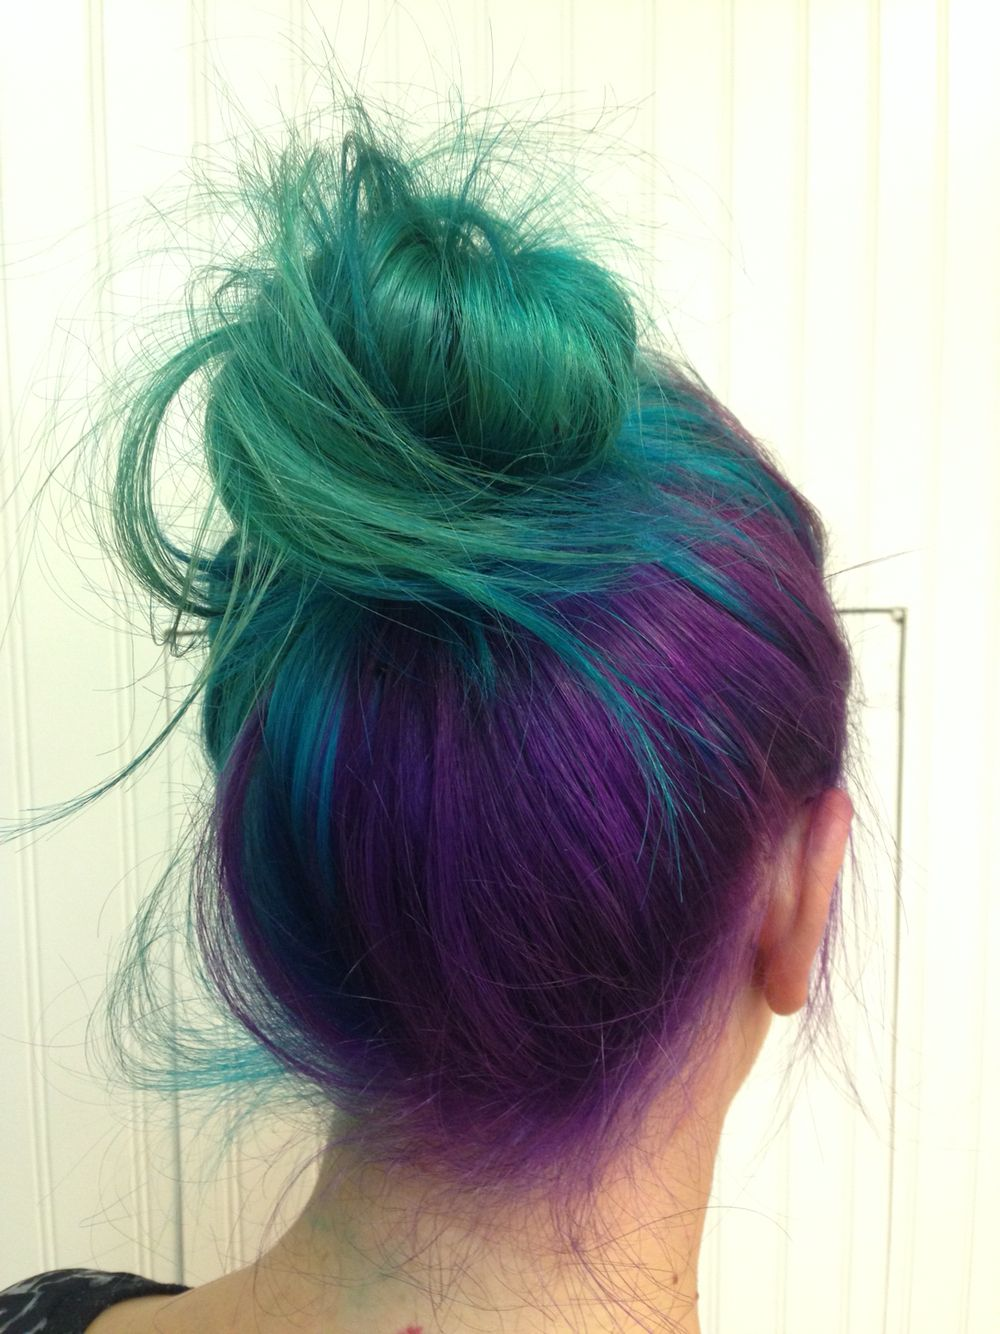 Purpleblue sea foam hair cabelo pinterest sea foam